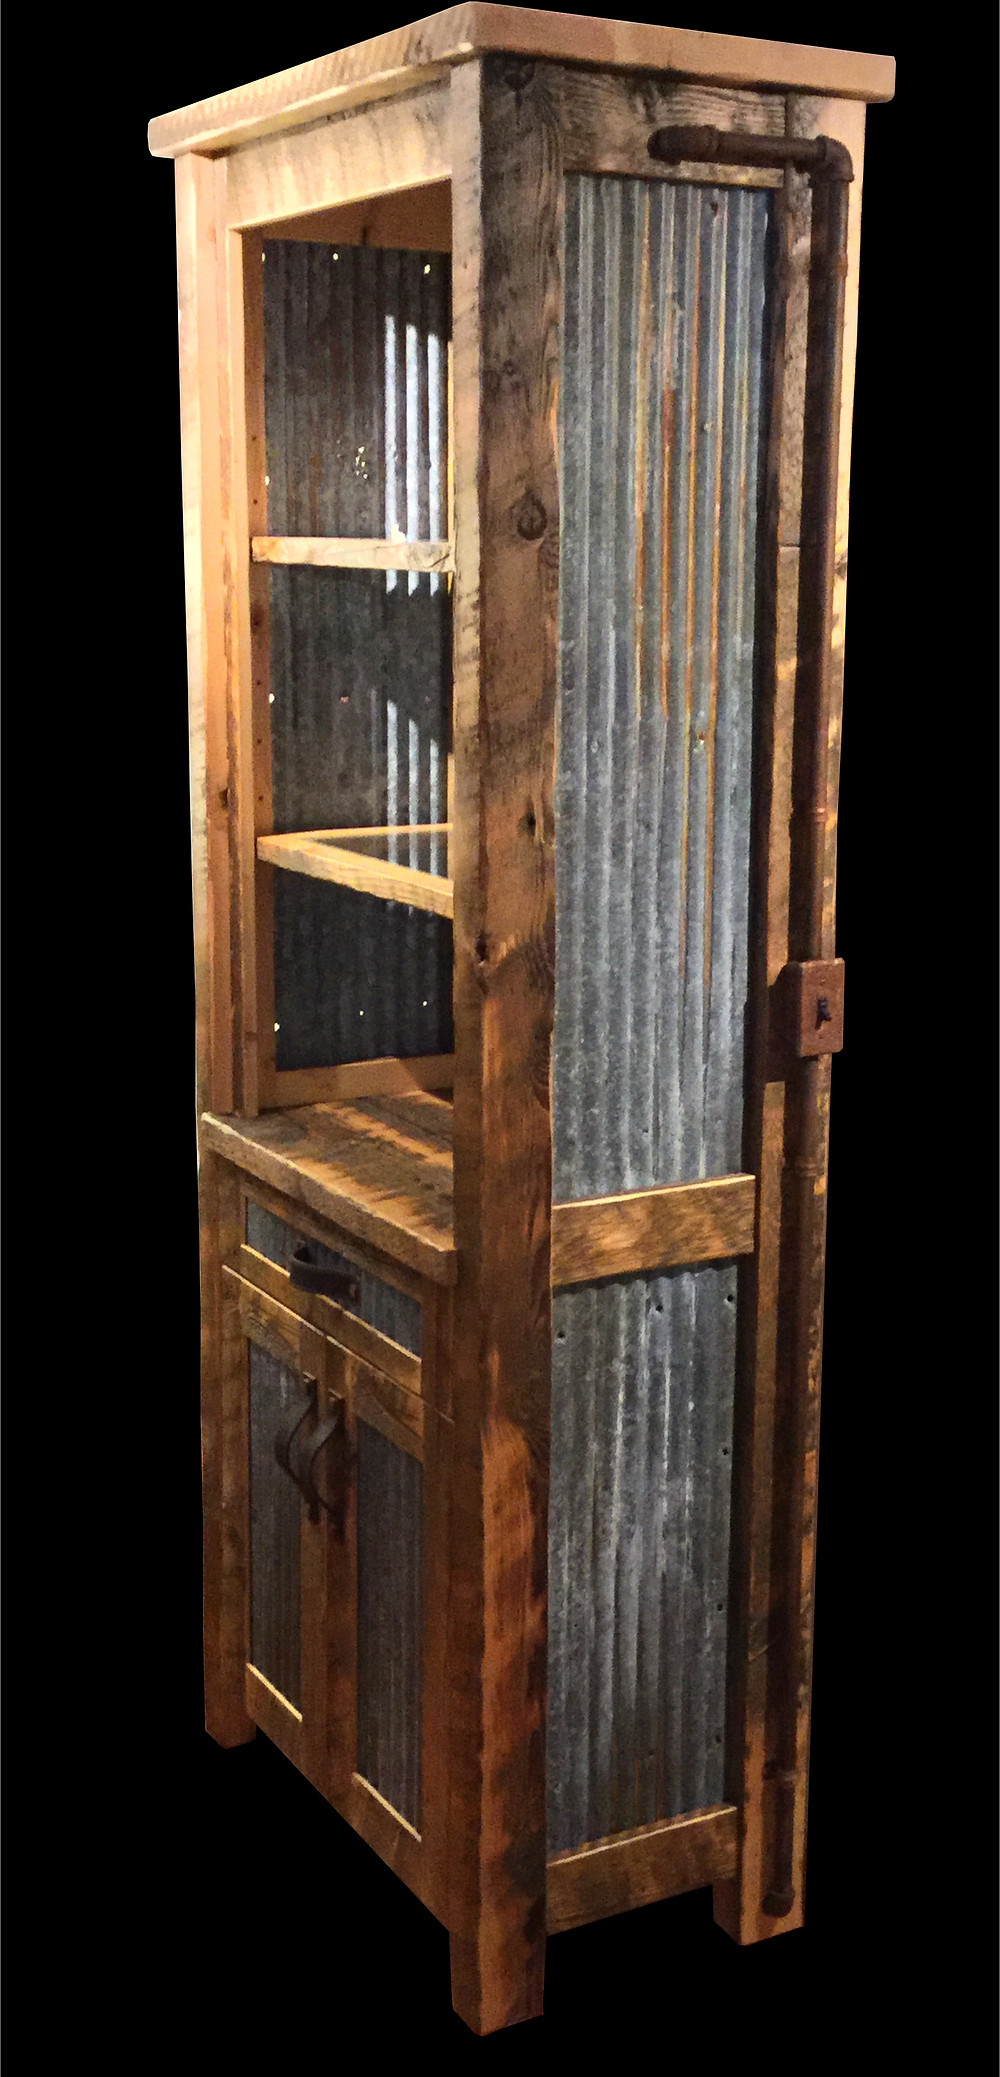 Reclaimed barnwood, corrugated metal, rusty electrical conduit, industrial light, and glass shelve china hutch by Modern Rustic Design.